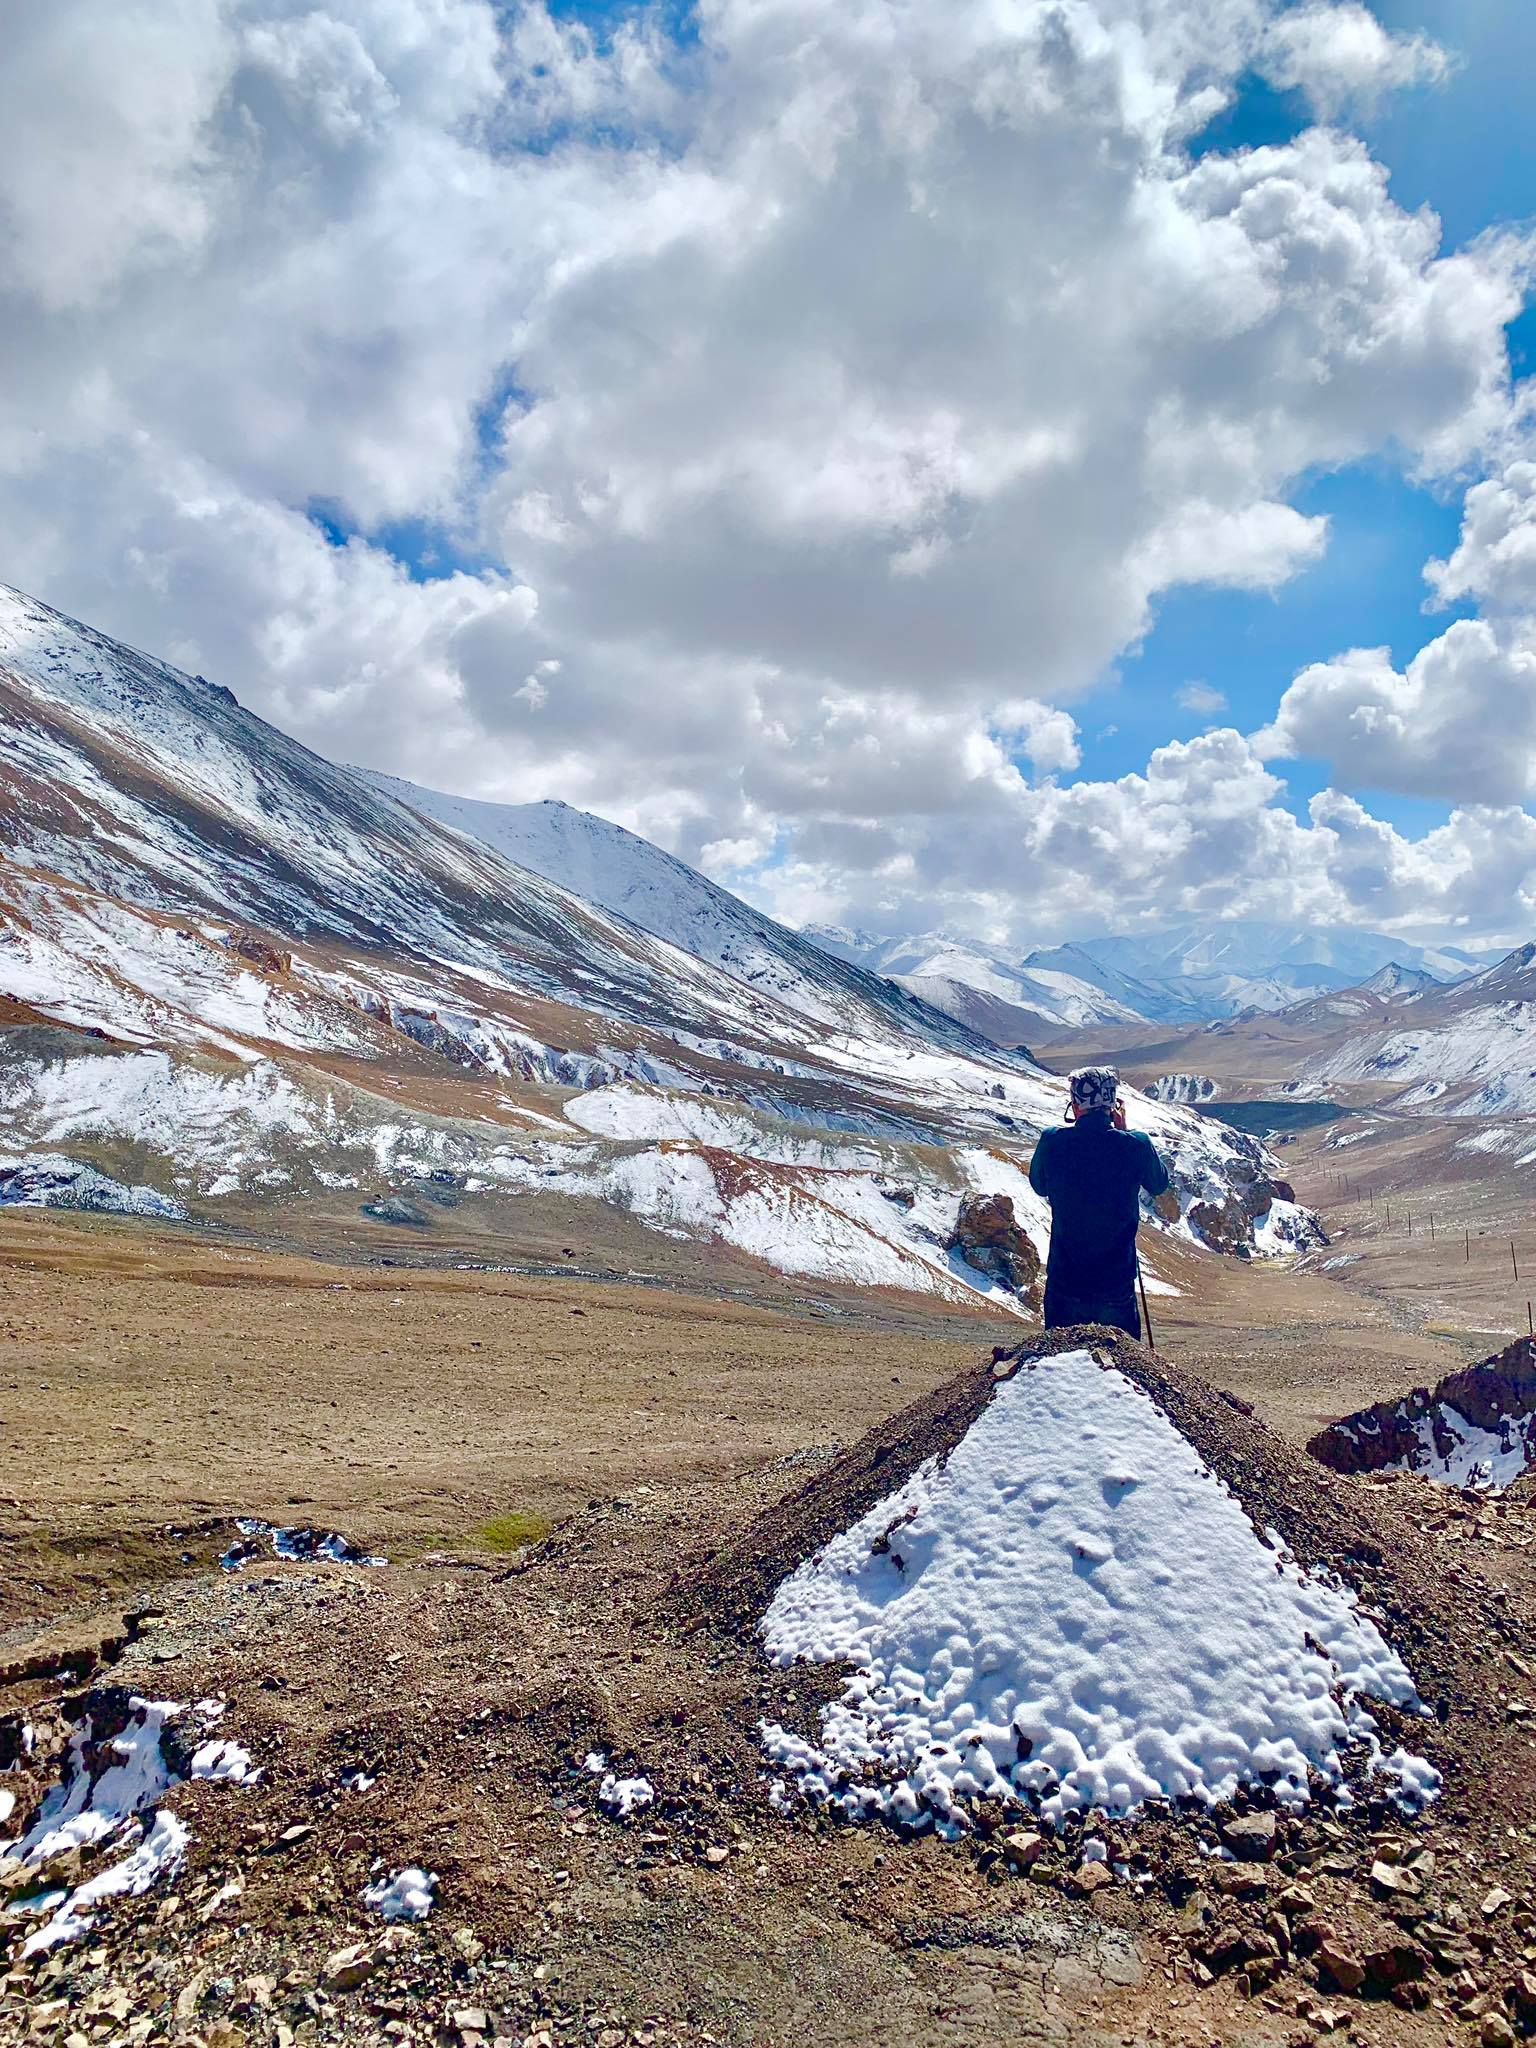 13 Things You Should Not Miss When You Travel the Pamir Highway in Tajikistan14